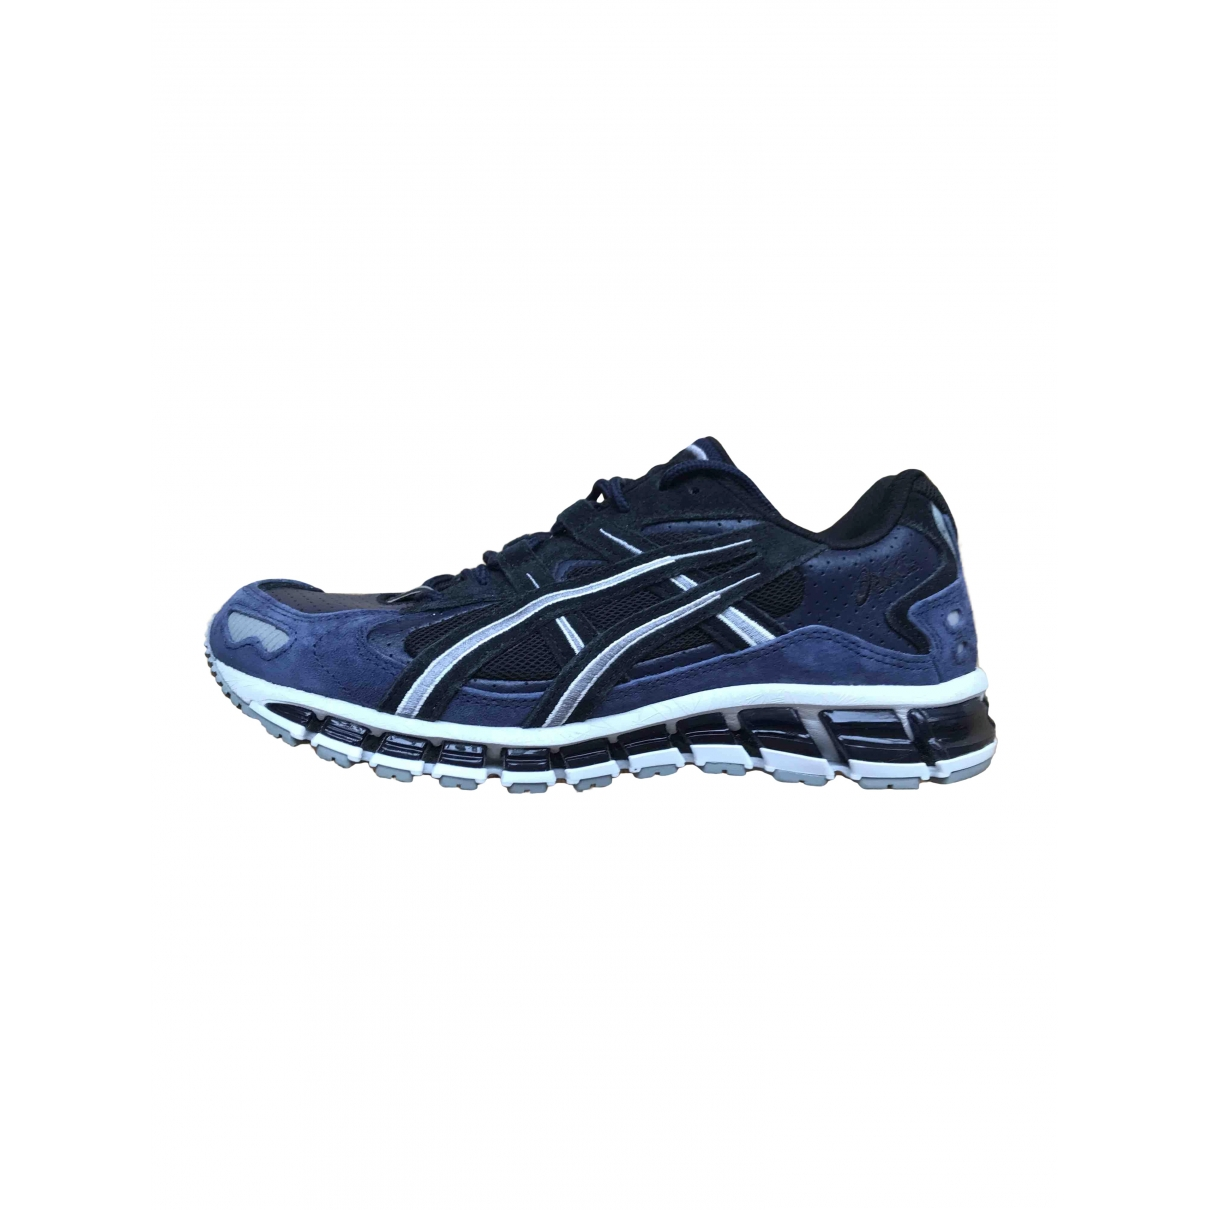 Asics \N Blue Suede Trainers for Men 40.5 EU